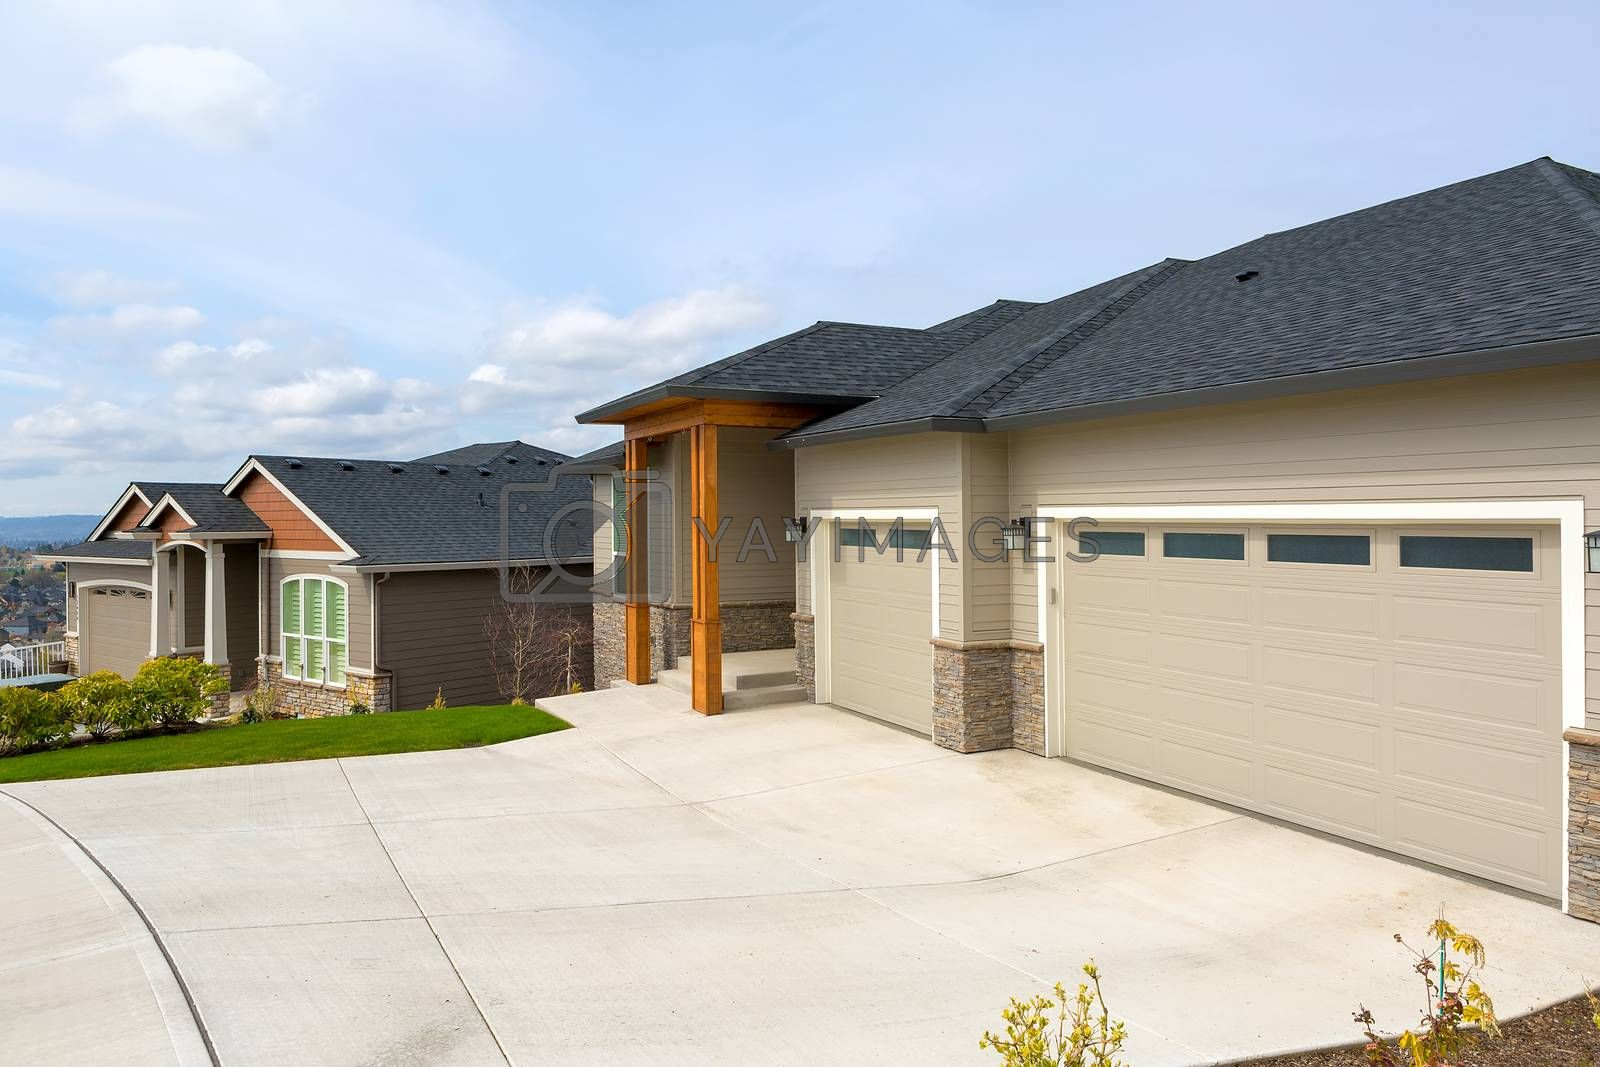 New custom built houses in Happy Valley Oregon suburban neighborhood with car garage driveway and manicured front lawn